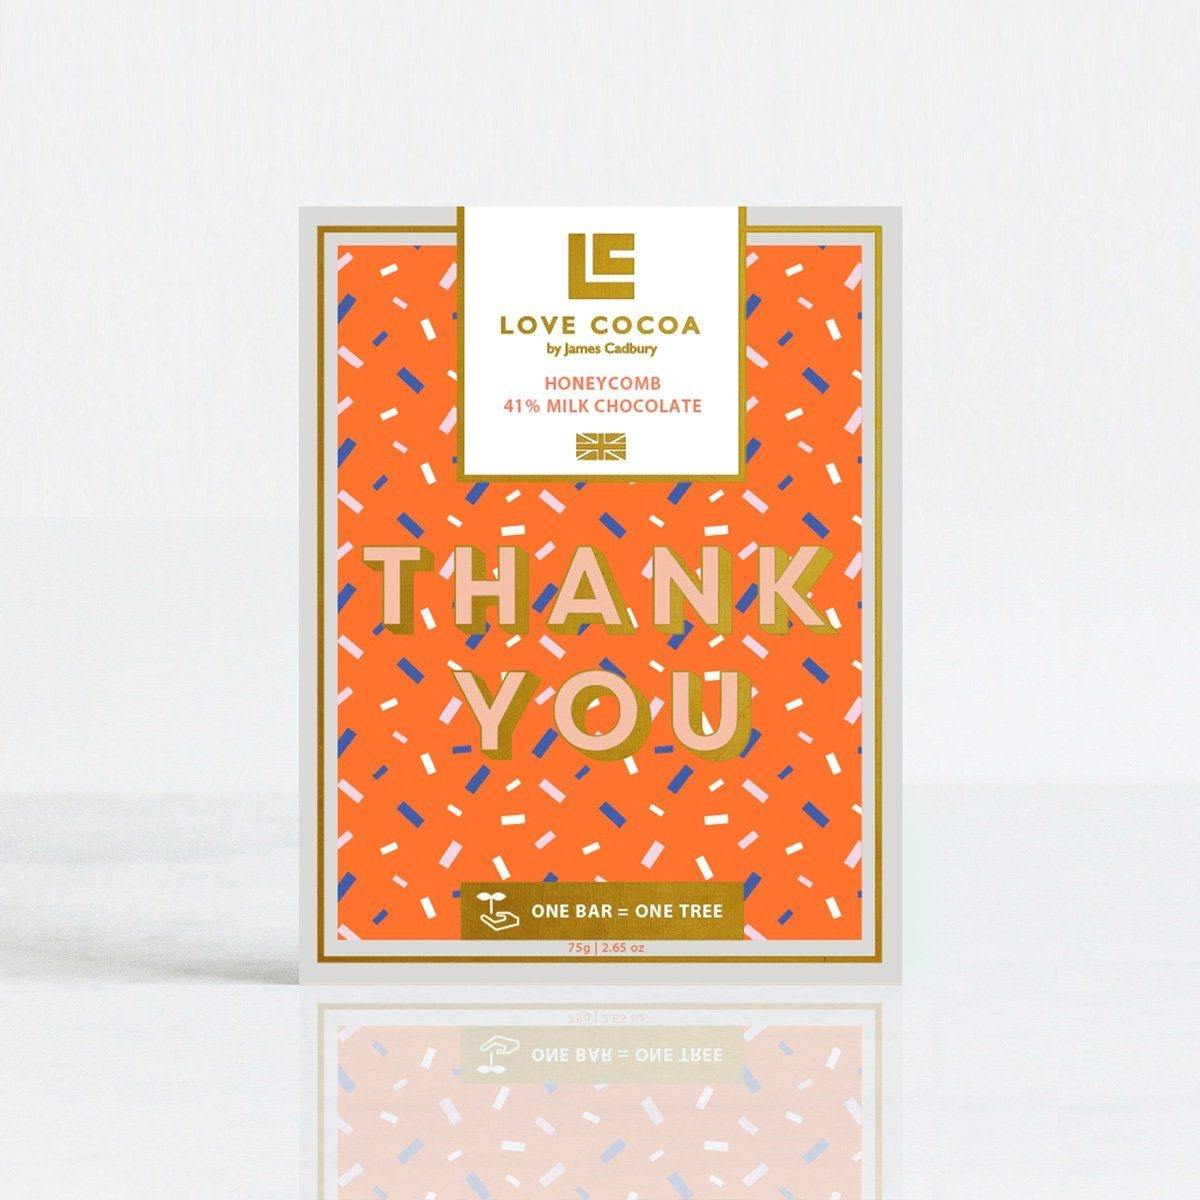 'Thank You' Honeycomb Milk Chocolate - Gift - BoxTree